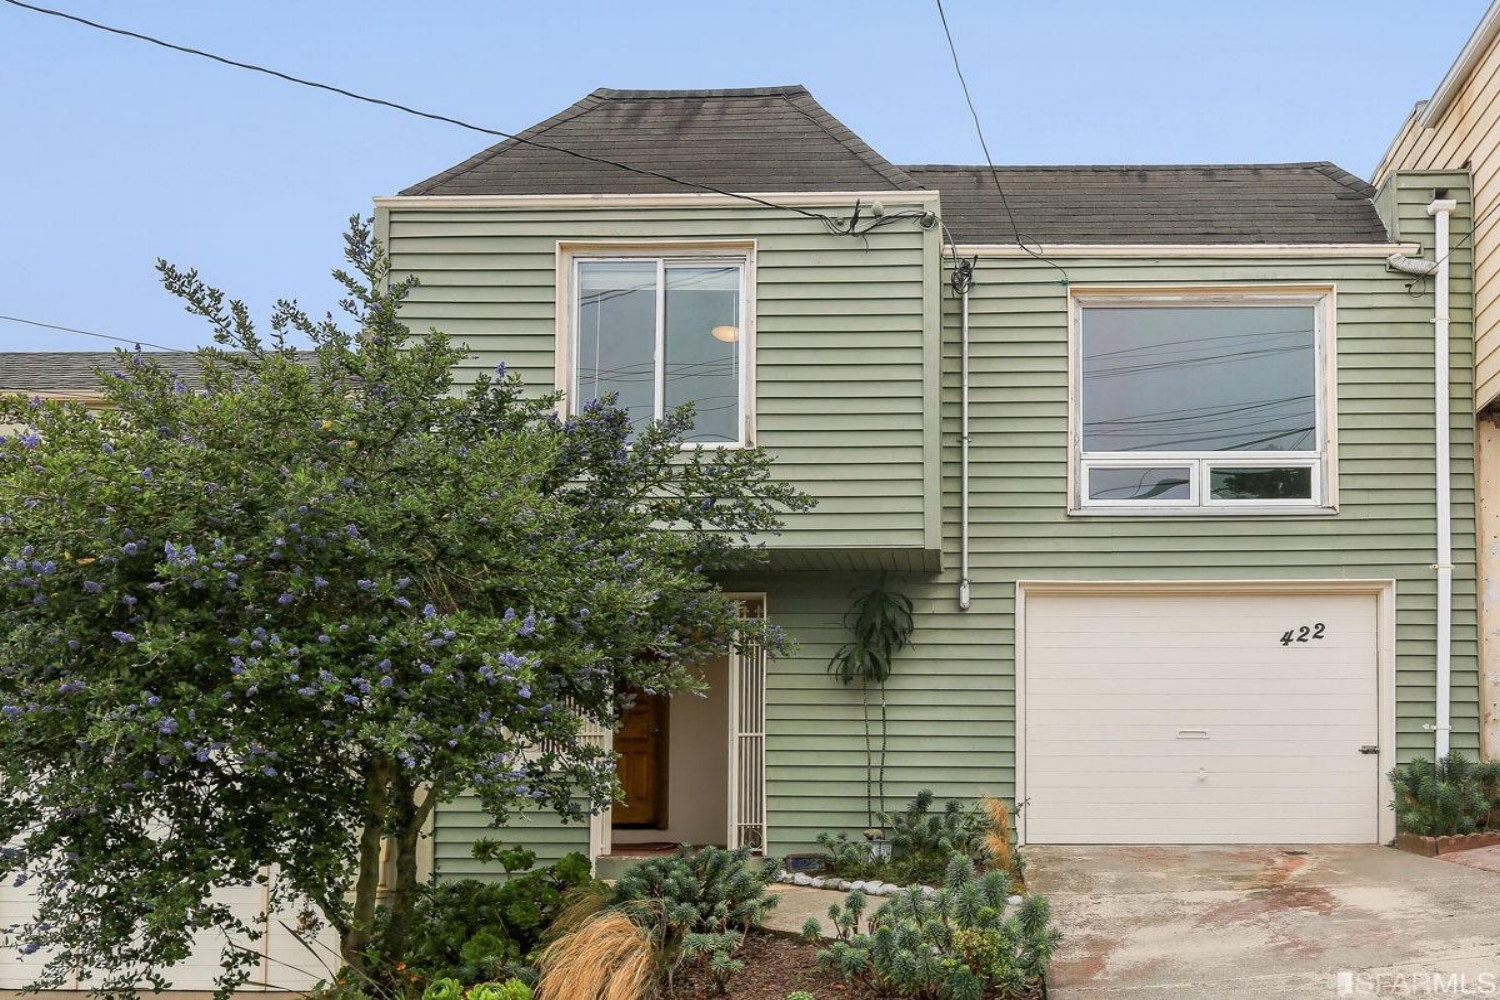 422 Bright - Merced HeightsSold for $900,000